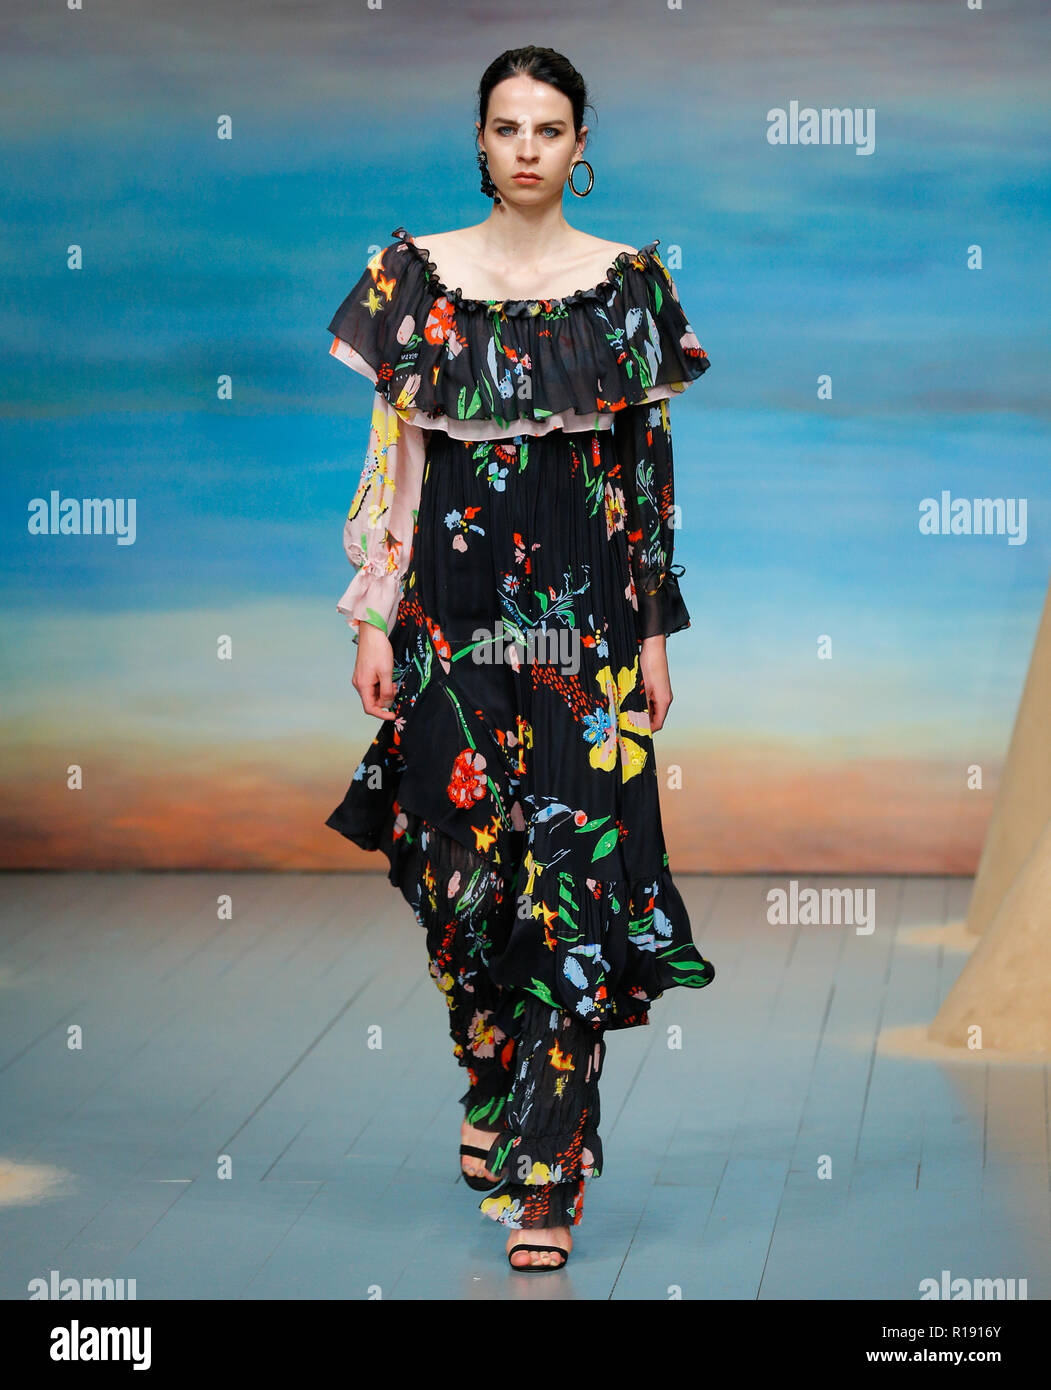 Roberta Einer Estonian Fashion Designer New Collection Catwalk At London Fashion Week Mens Summer Spring 2019 Stock Photo Alamy